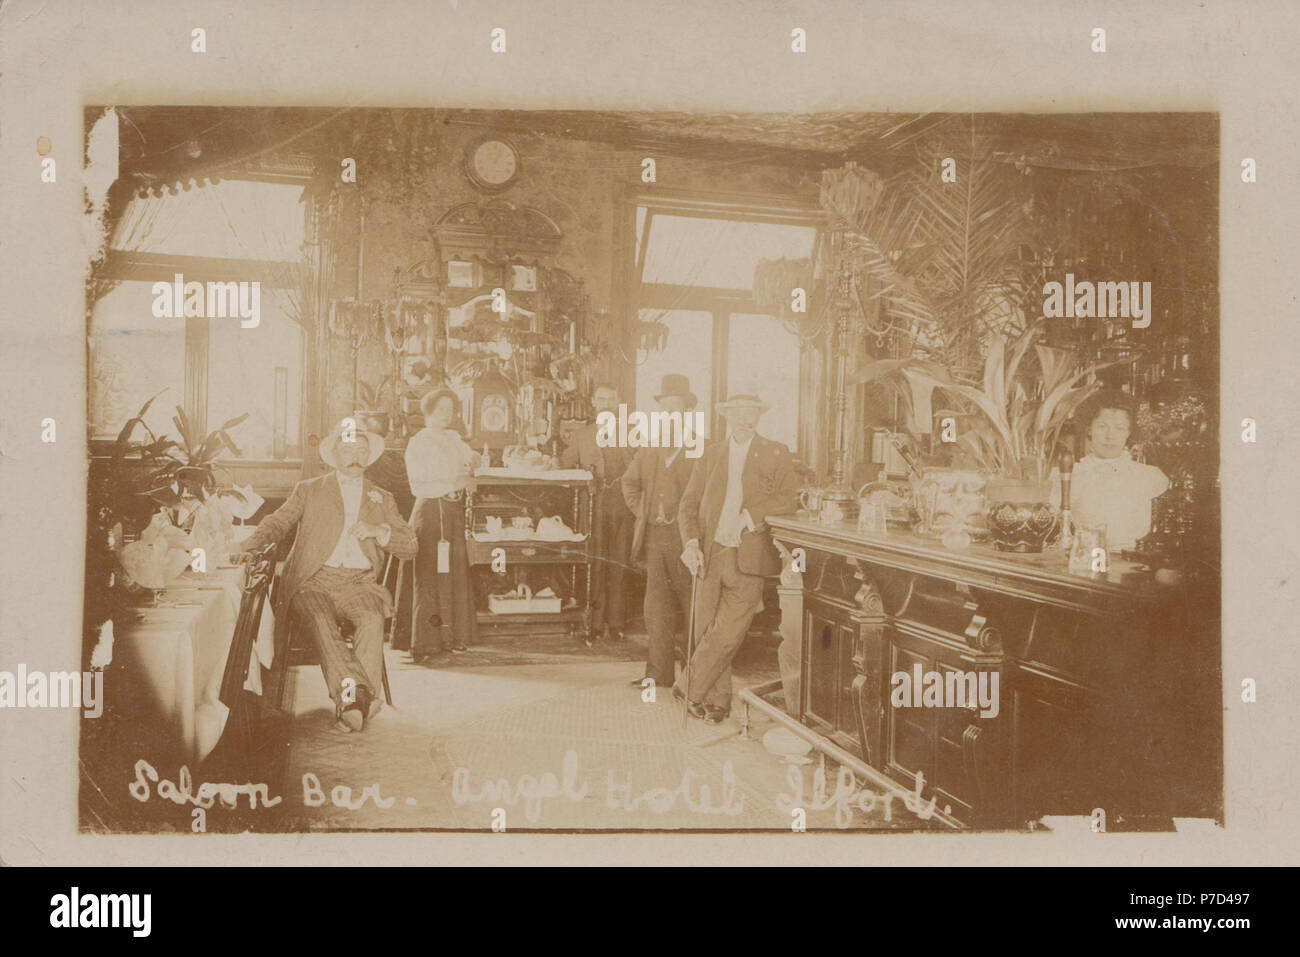 Vintage Photograph of The Saloon Bar of The Angel Hotel, Ilford, London, England, UK - Stock Image